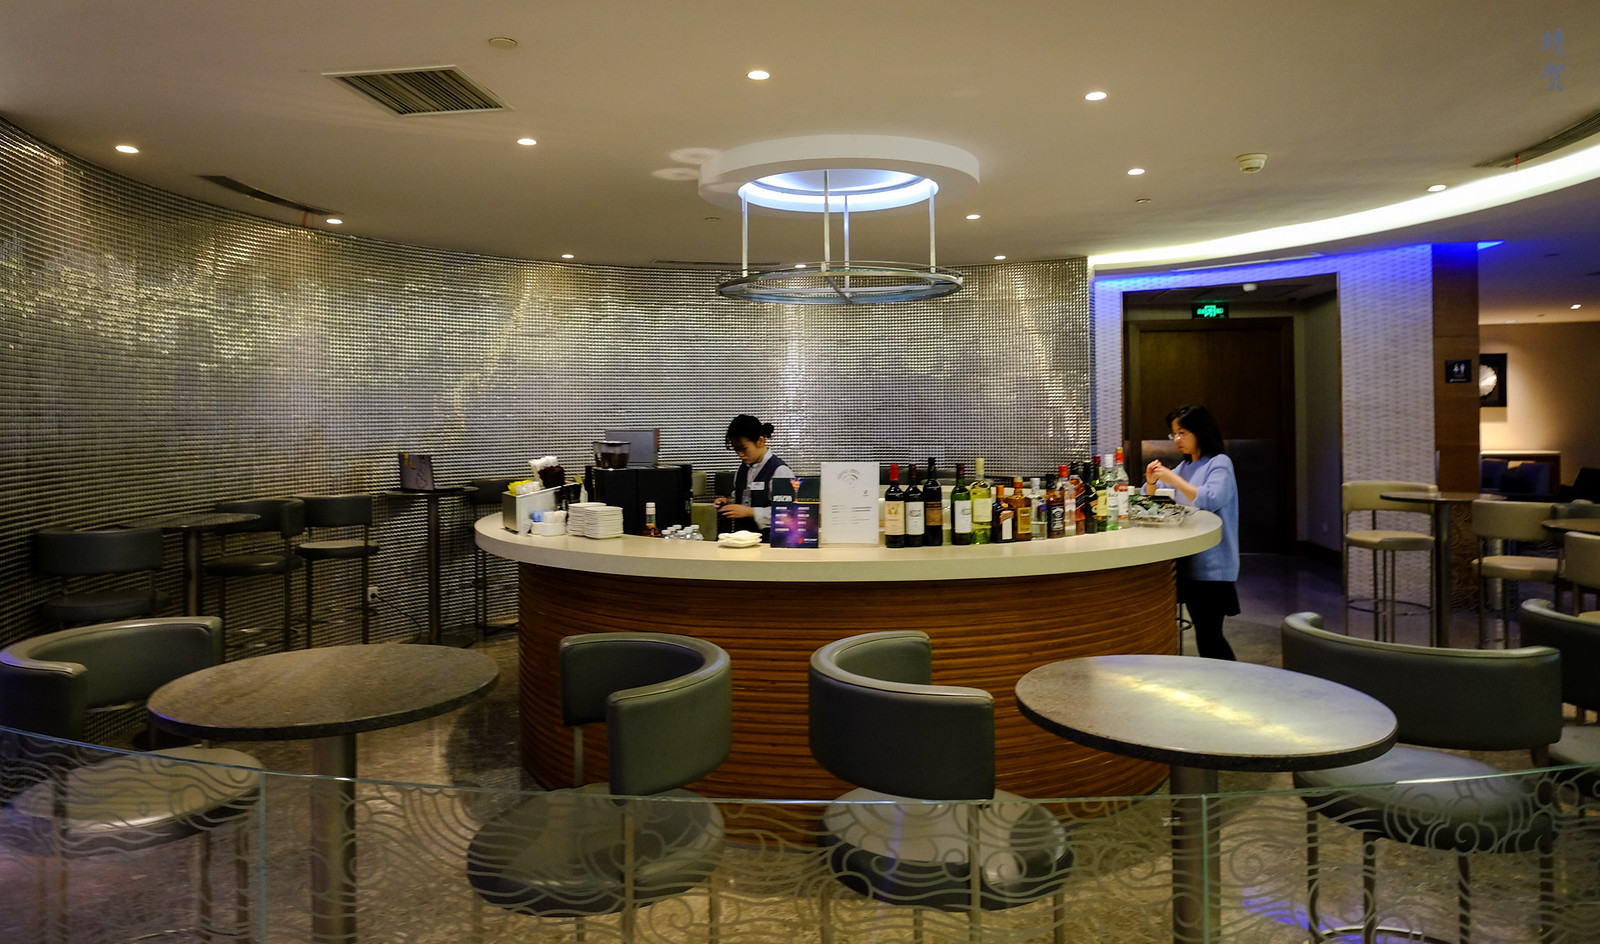 Bar counter and seating